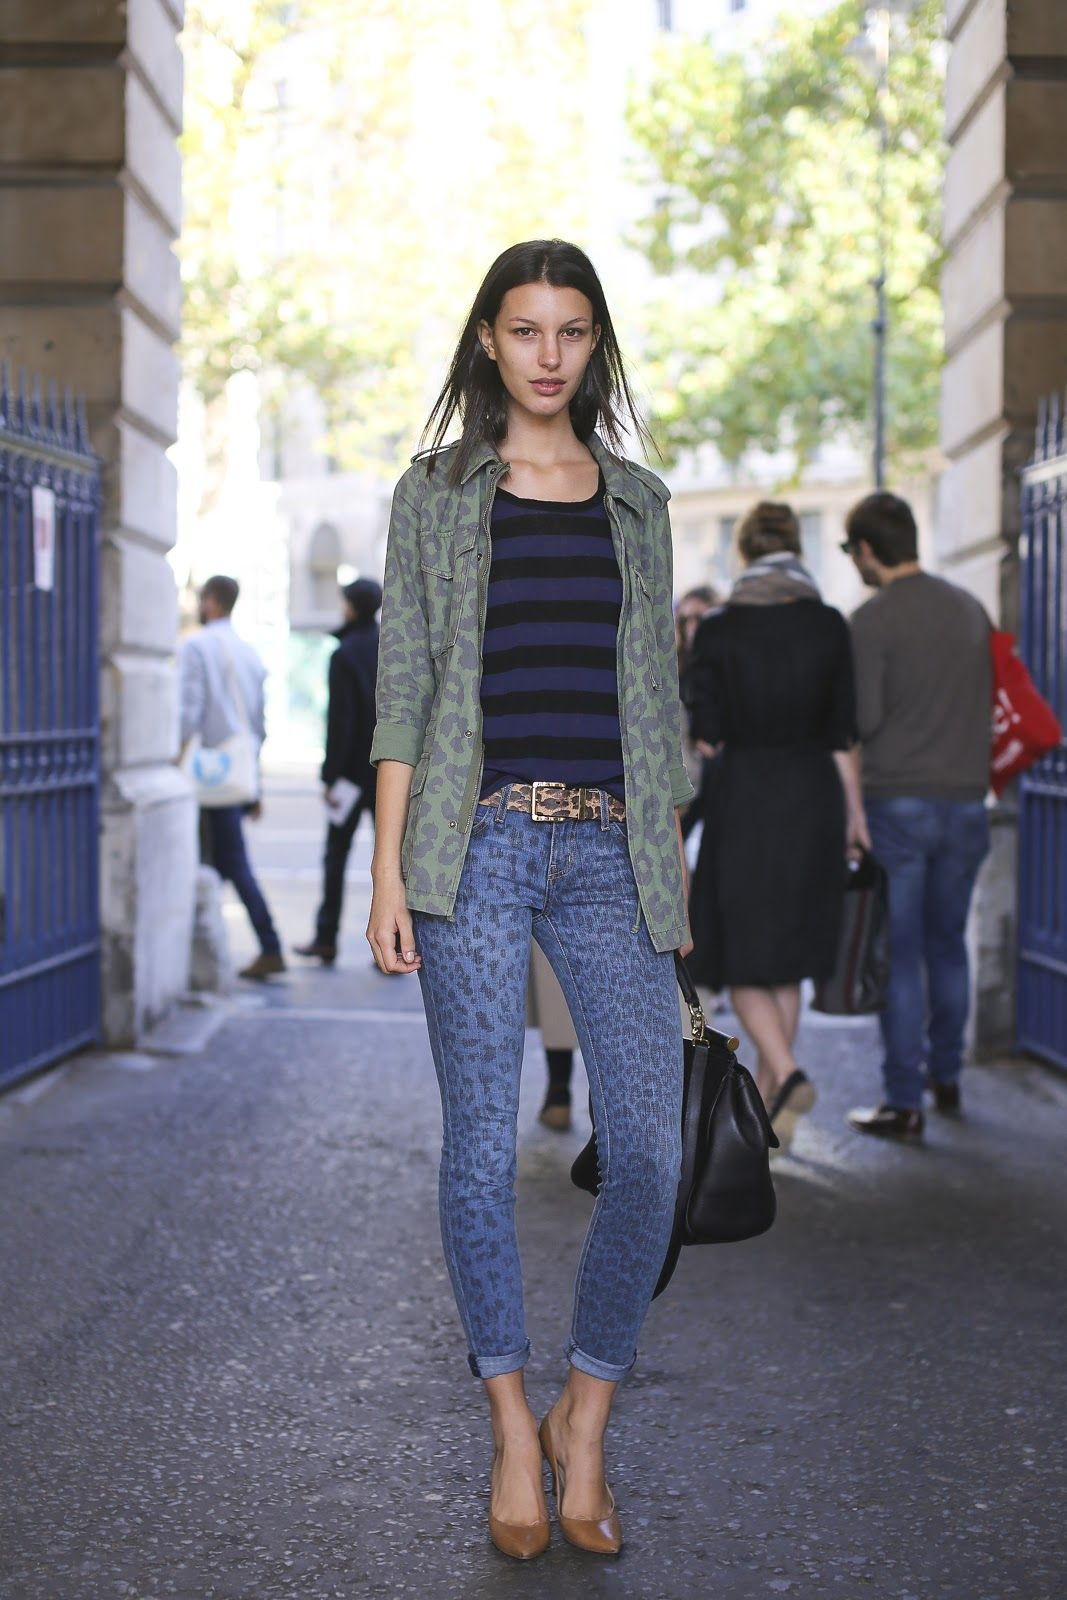 Models Off Duty: Kate King (Ford, NY)